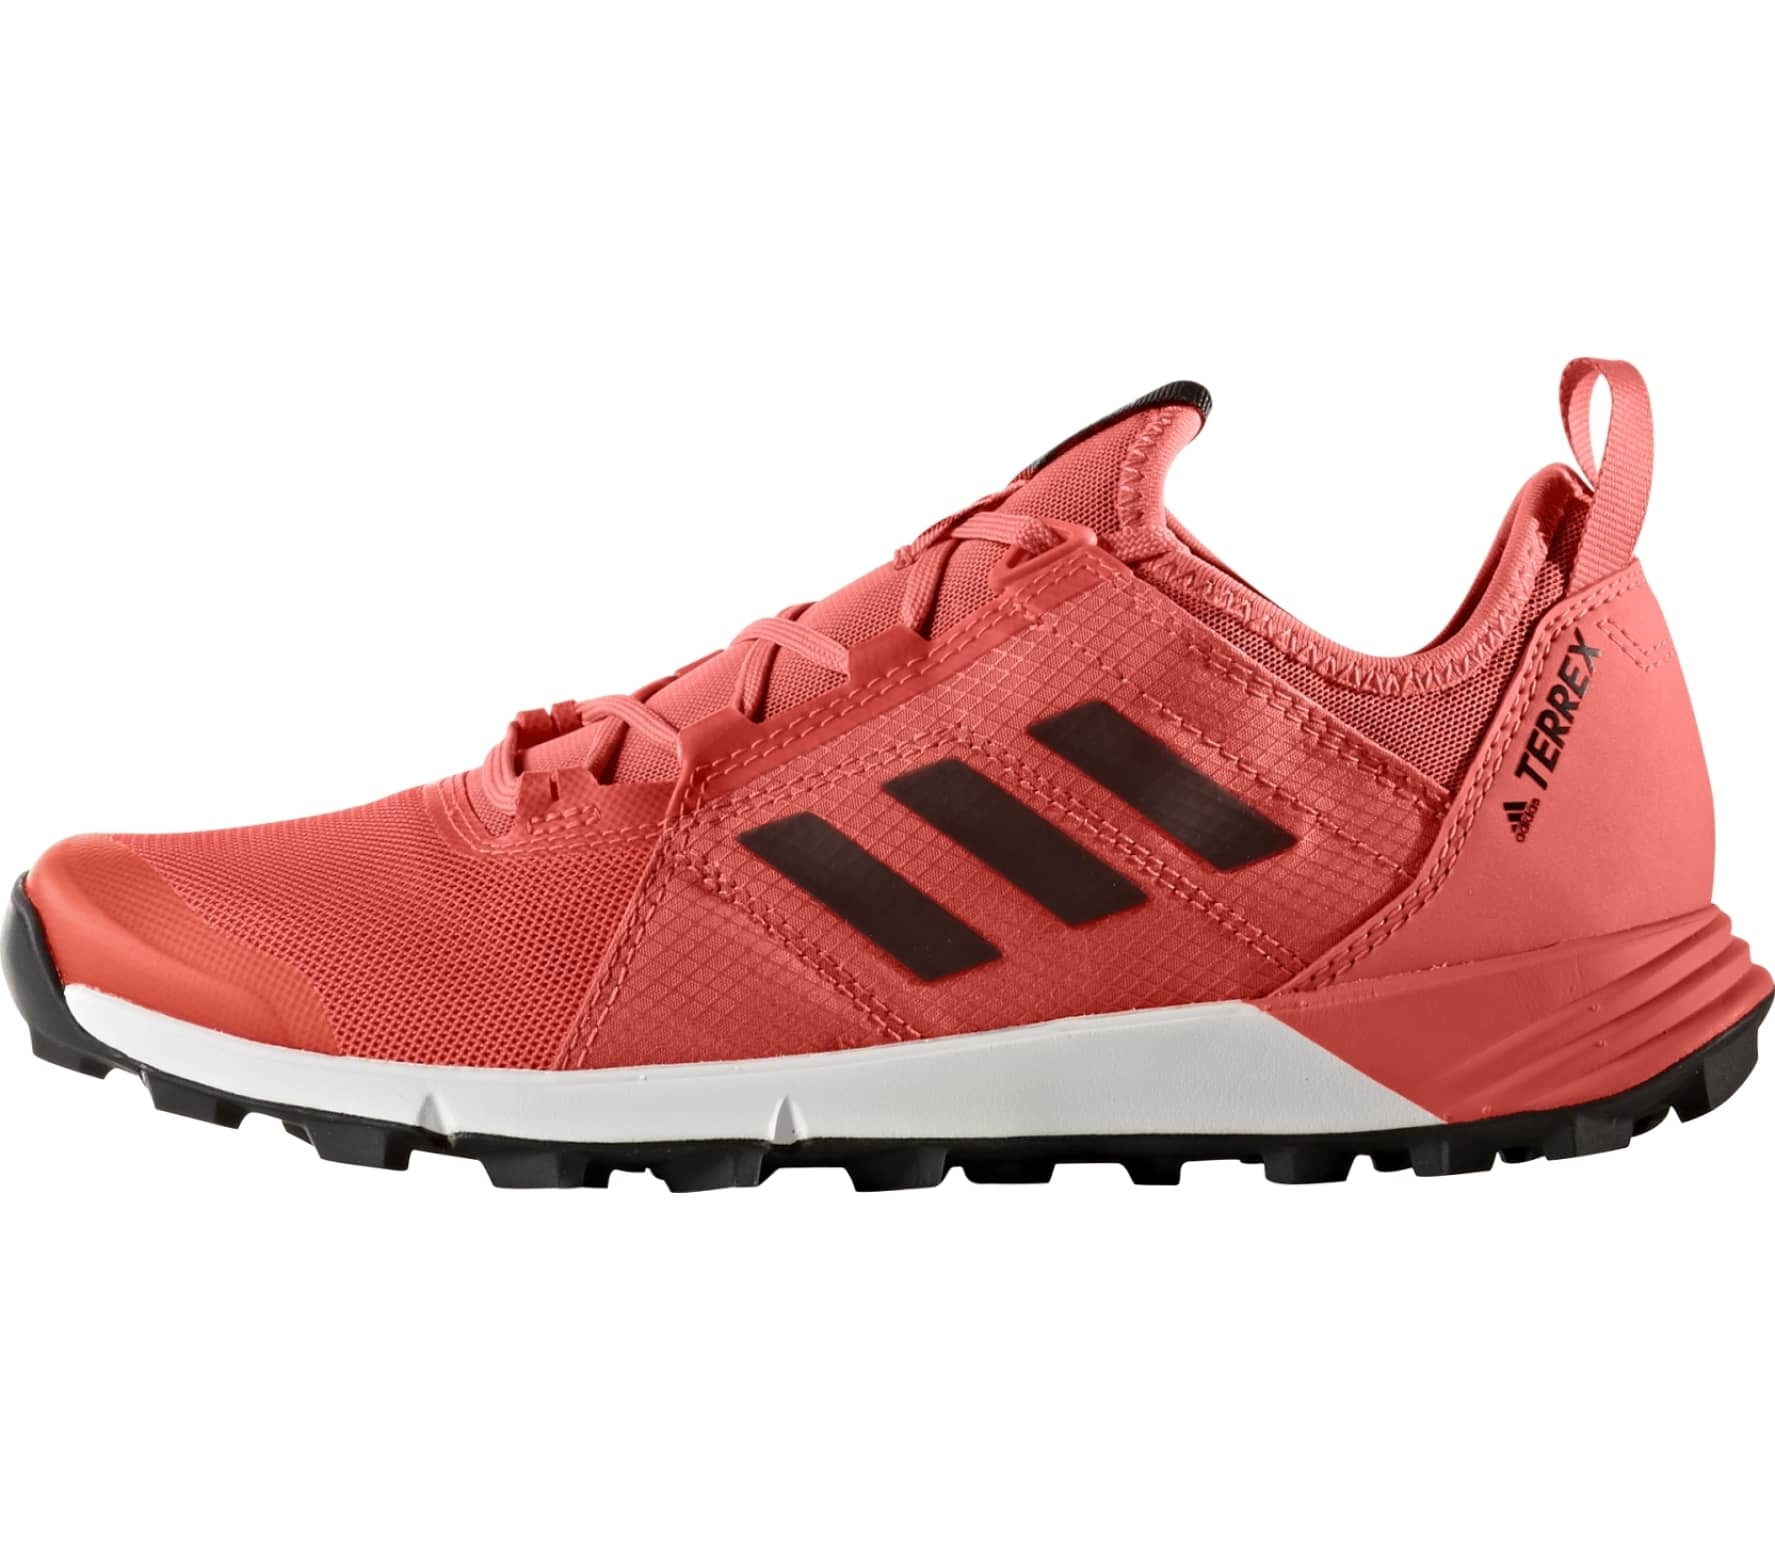 Adidas Terrex Agravic Speed women's trail running shoes (red)